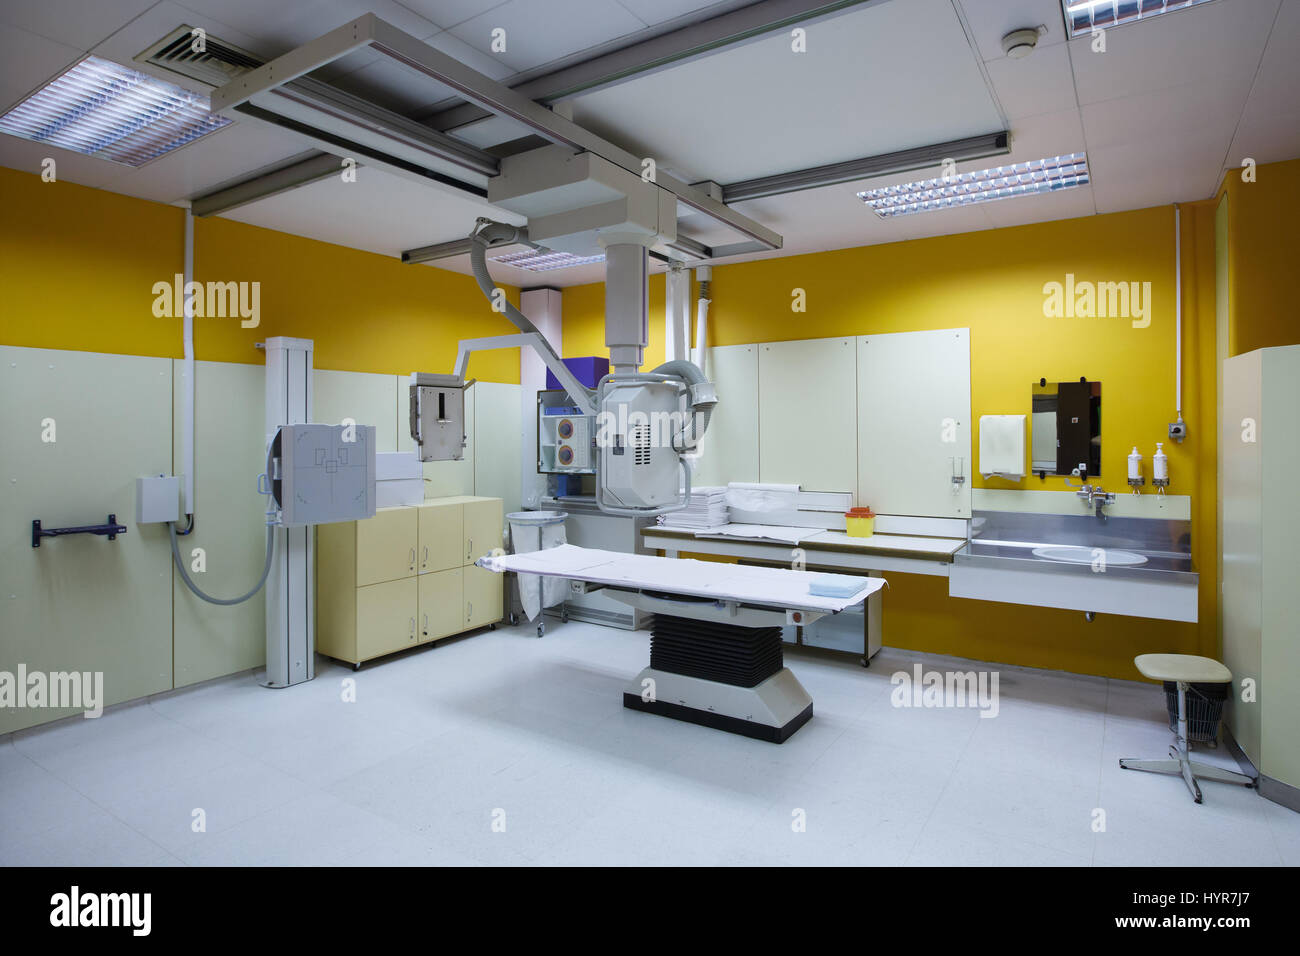 Modern hospital operating room - Stock Photo X Ray Room In A Hospital Er Operating Room With A Classic Ceiling Mounted X Ray System Modern Medical Equipment Interventional Medicine And